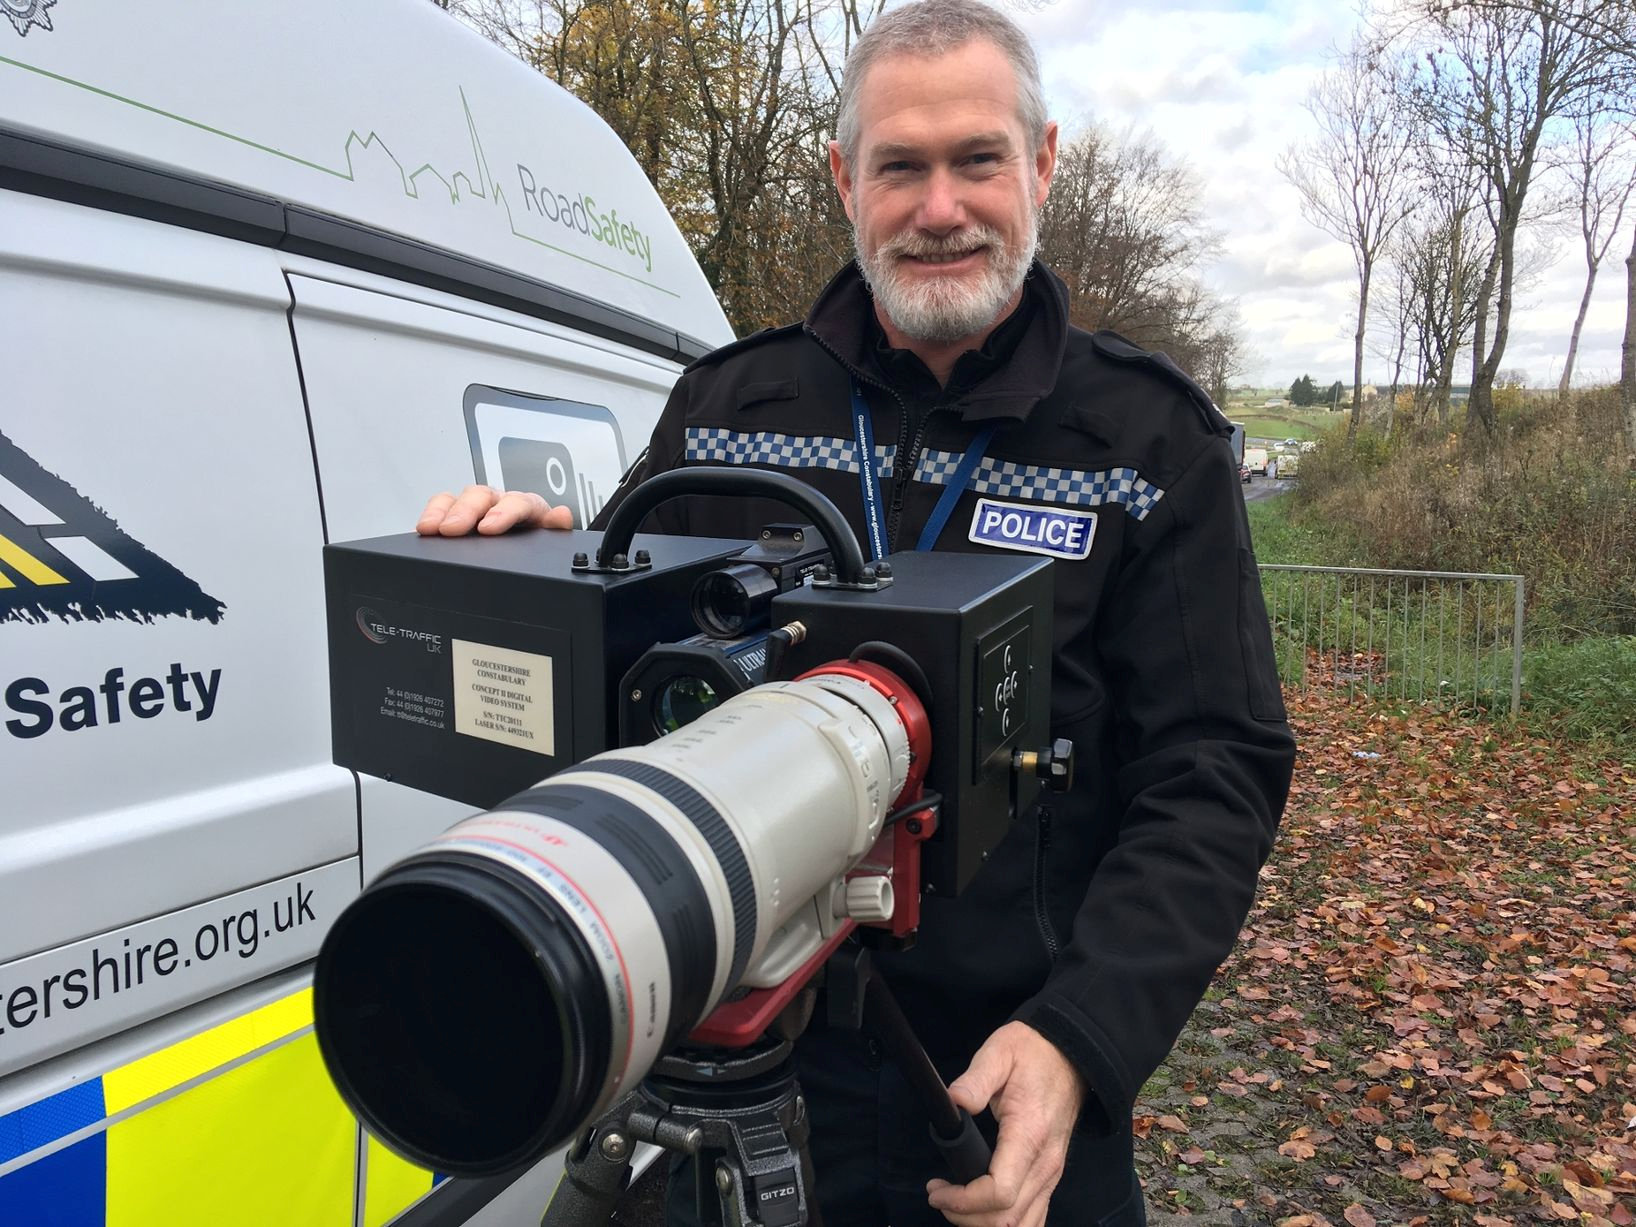 New A417 speed camera can catch drivers speeding up to 1km away